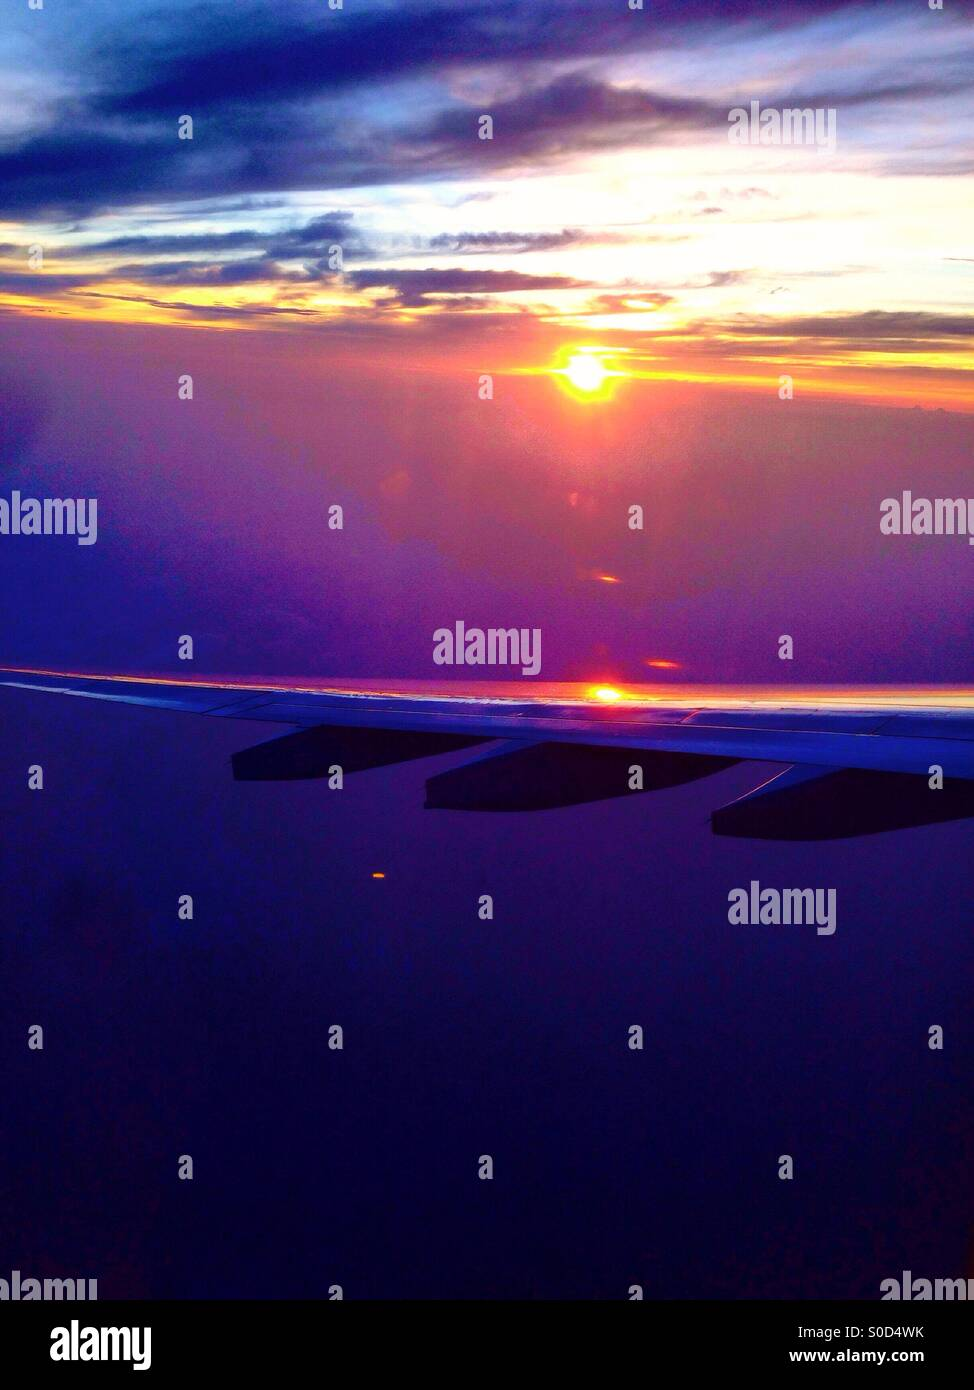 Parallel to the rising sun - Stock Image